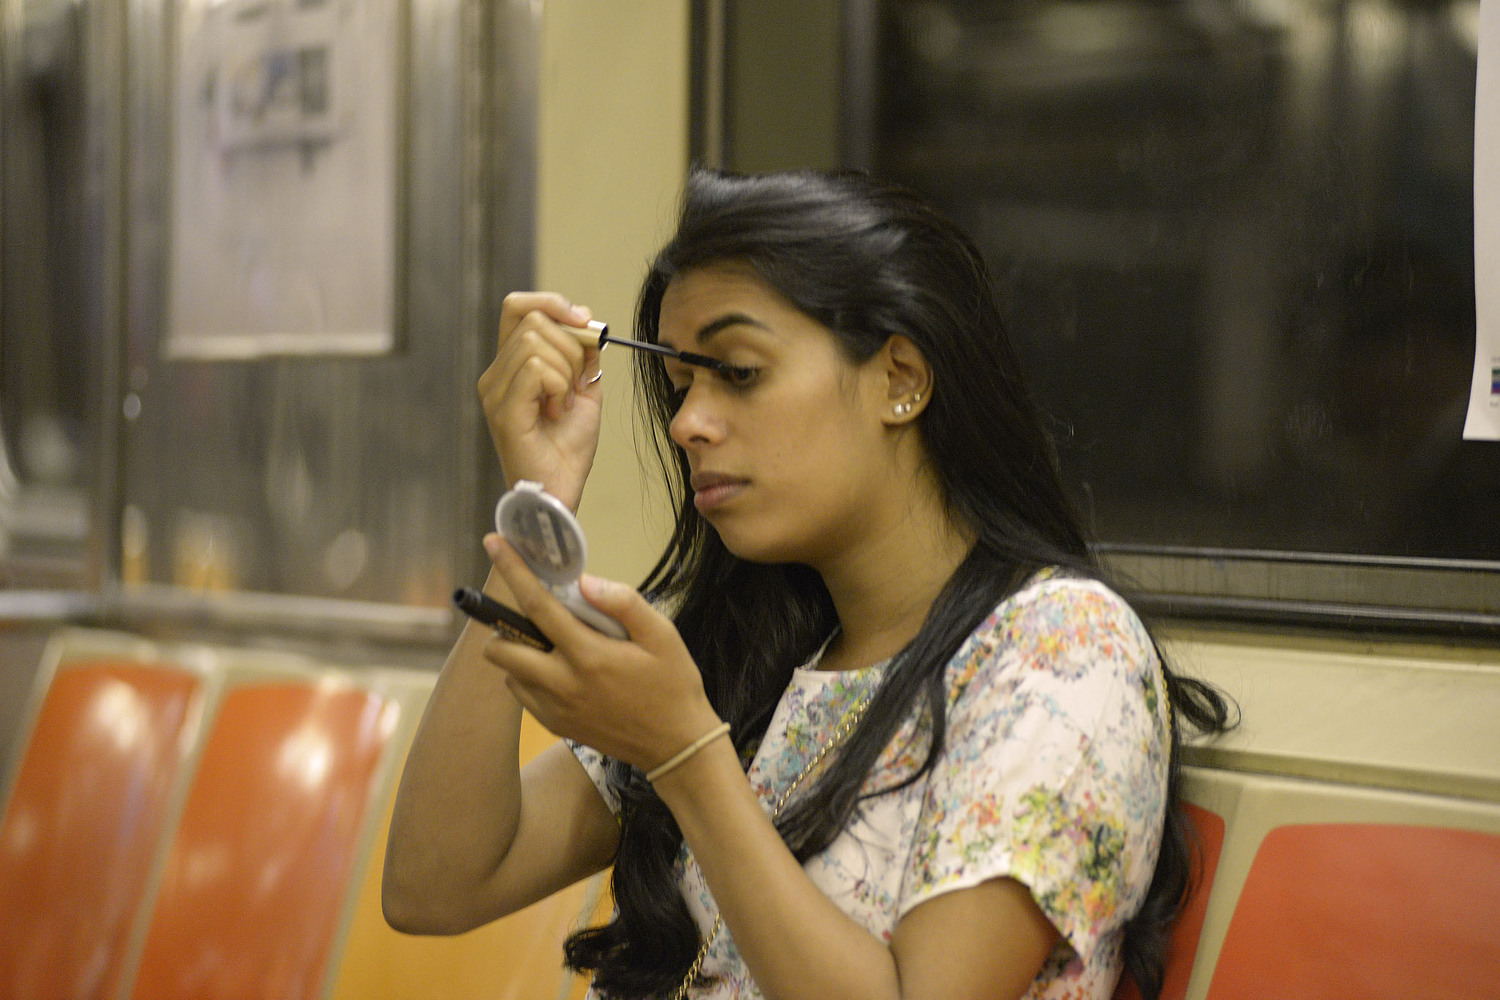 Woman Applying Mascara on Subway